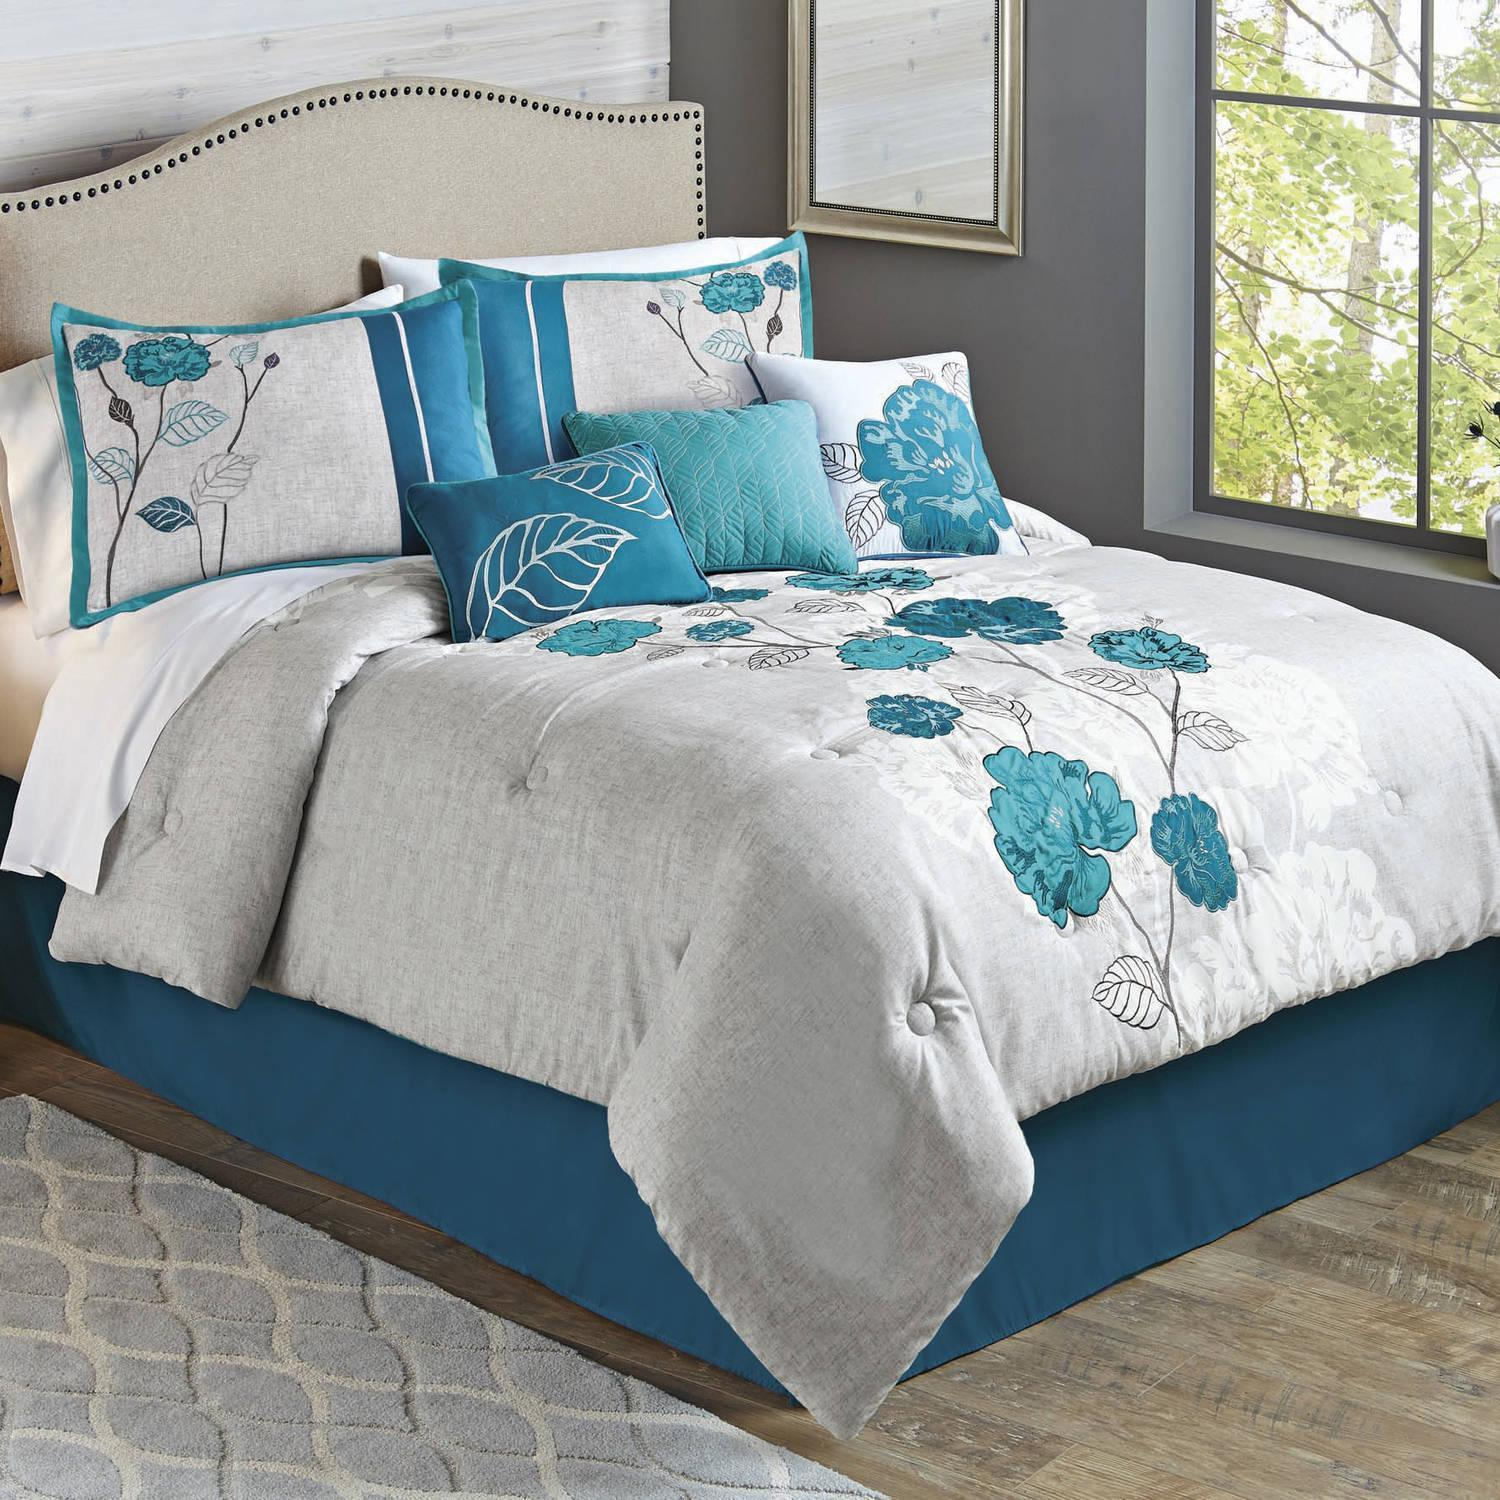 Image of: Bedding Colors